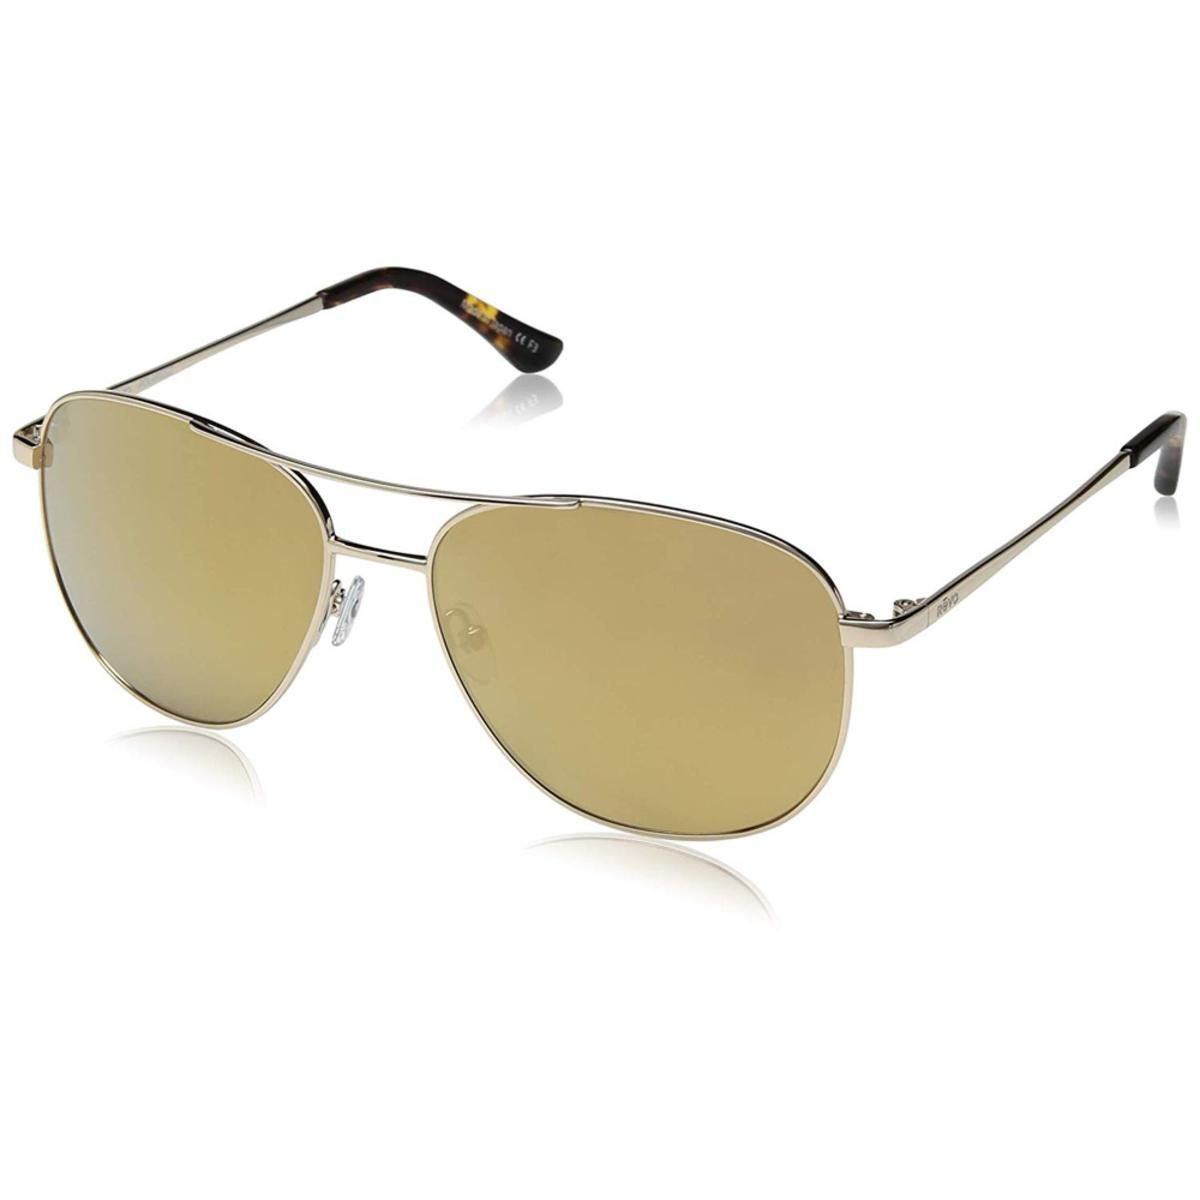 5414de3308 Revo Women s Maxie Navigator Sunglasses Champagne Lens with Gold Frame -  The Warming Store